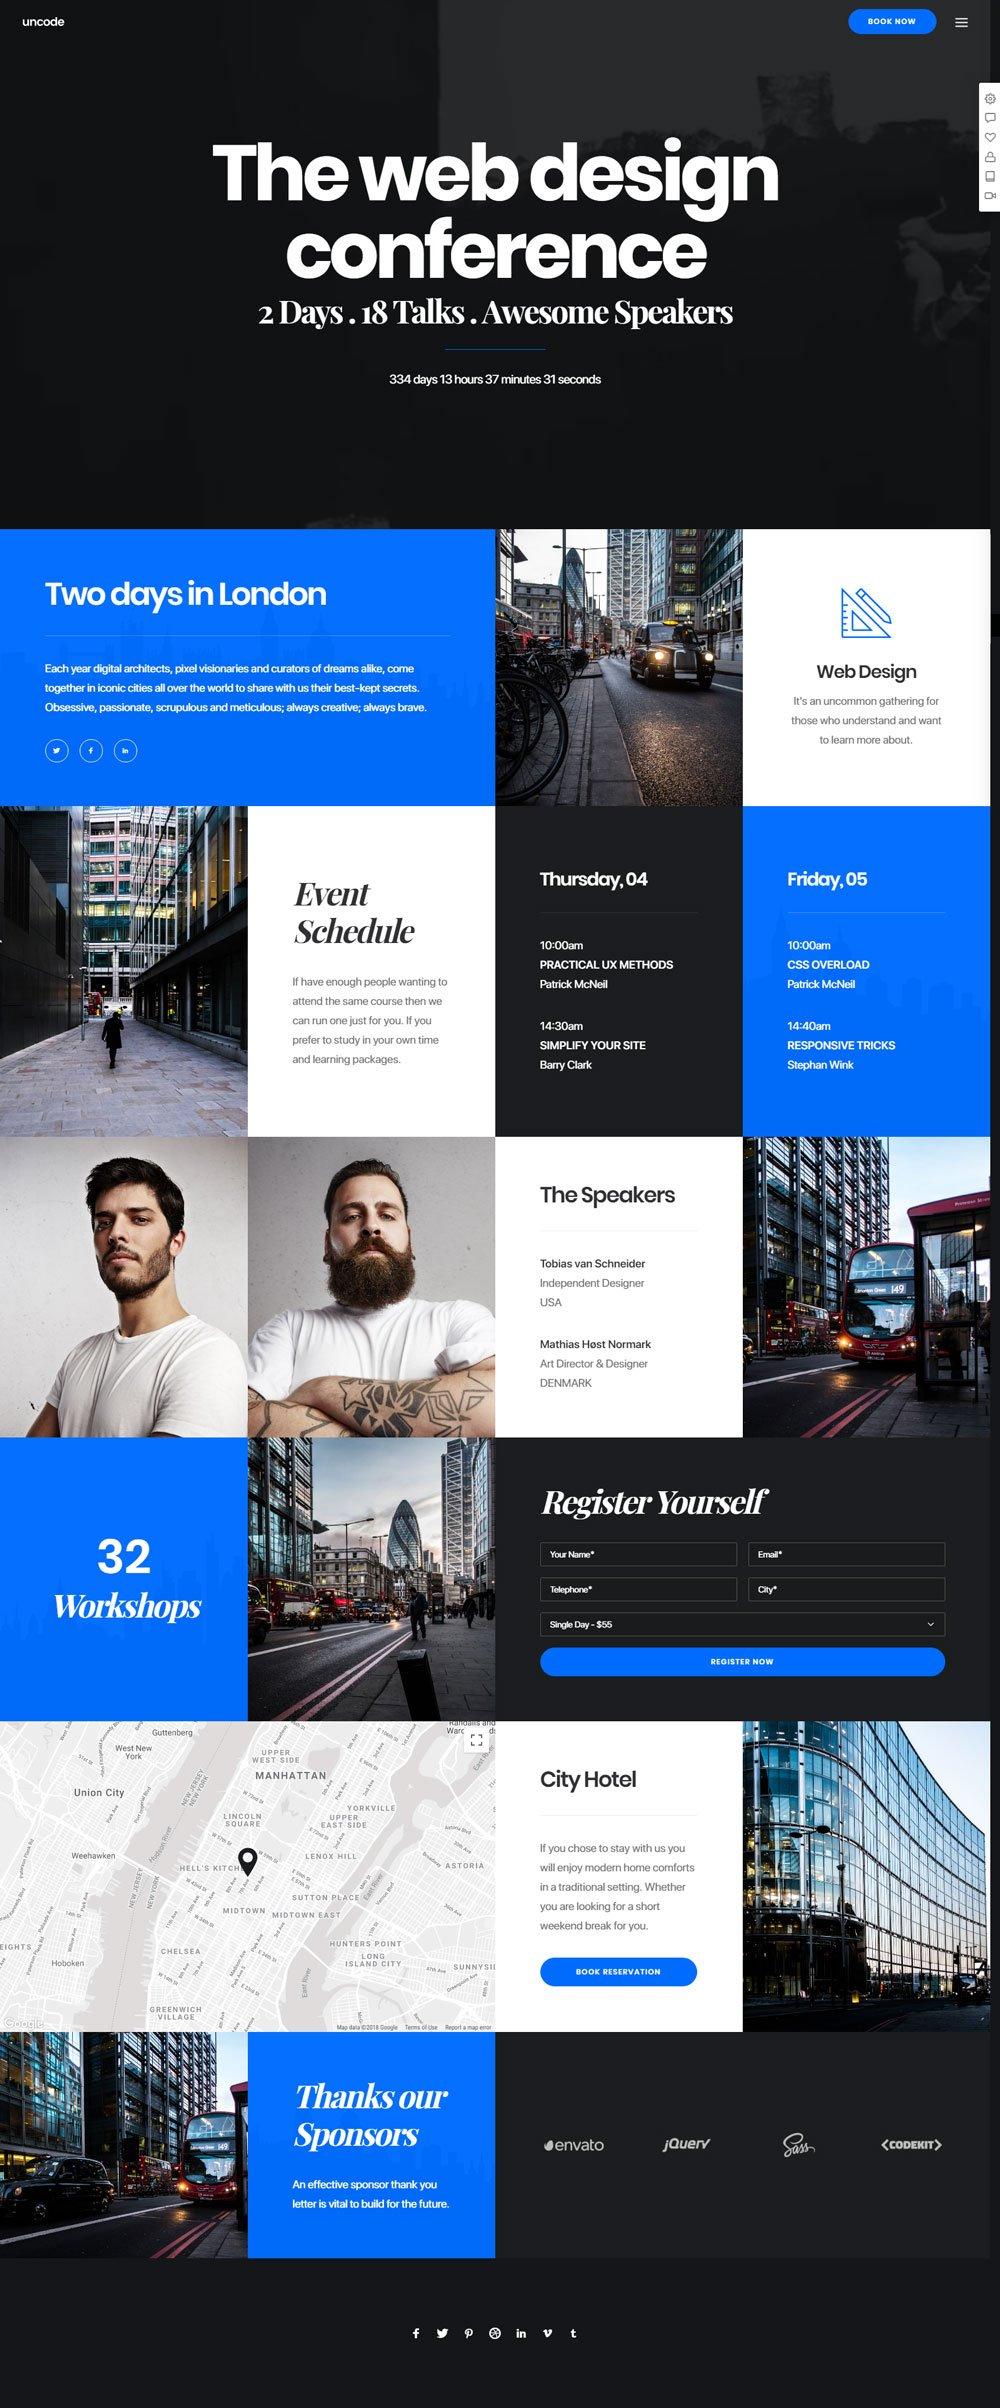 Best-WordPress-Themes-and-Web-Design-for-Creatives-003